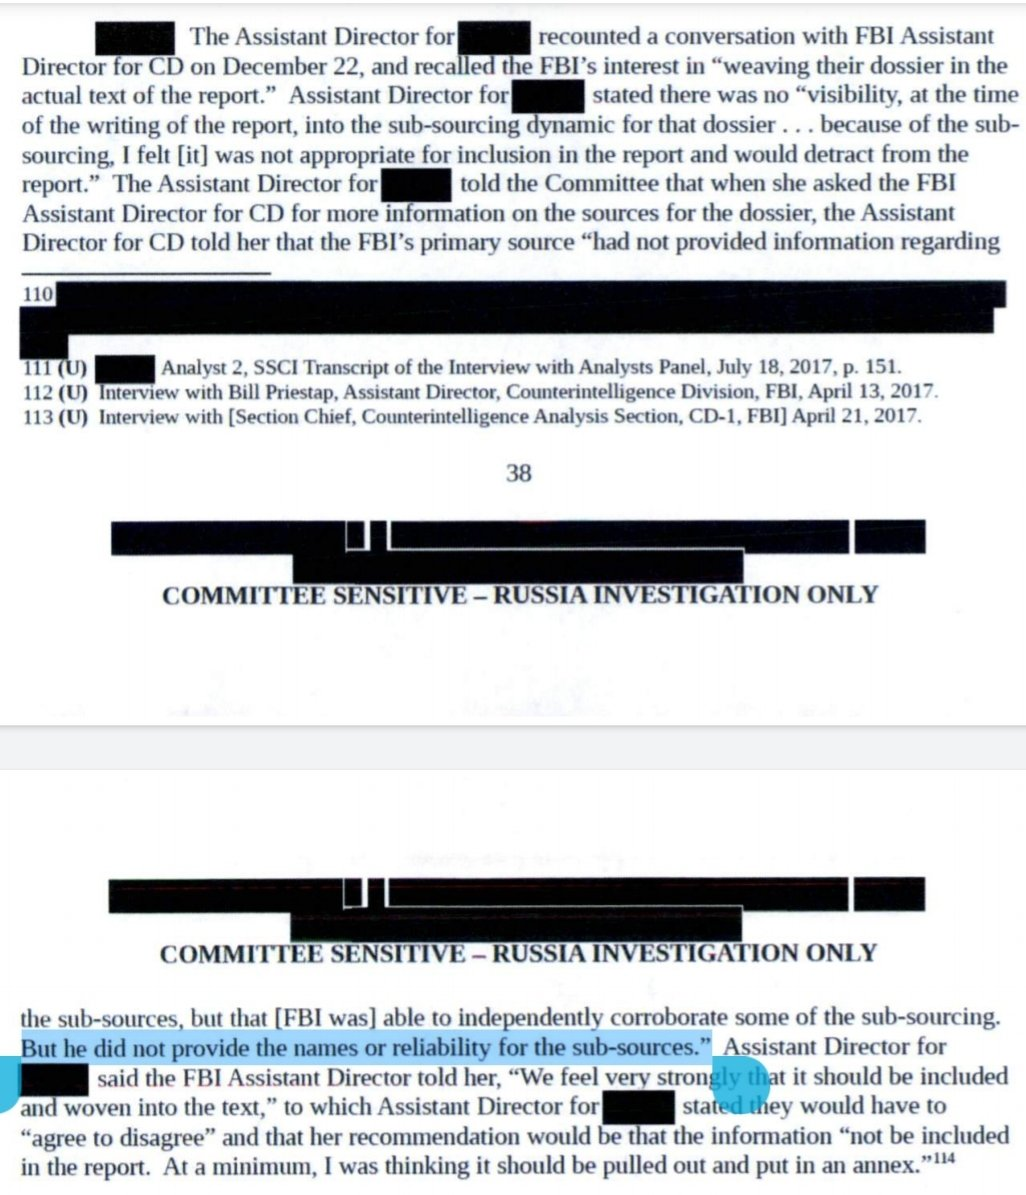 Important to note that we now know that Bill Priestap was shielding Igor Danchenko's identity from the CIA, during the ICA's creation, on December 22, 2016. https://t.co/H8xLkDS89N https://t.co/FdC9BL6MoD